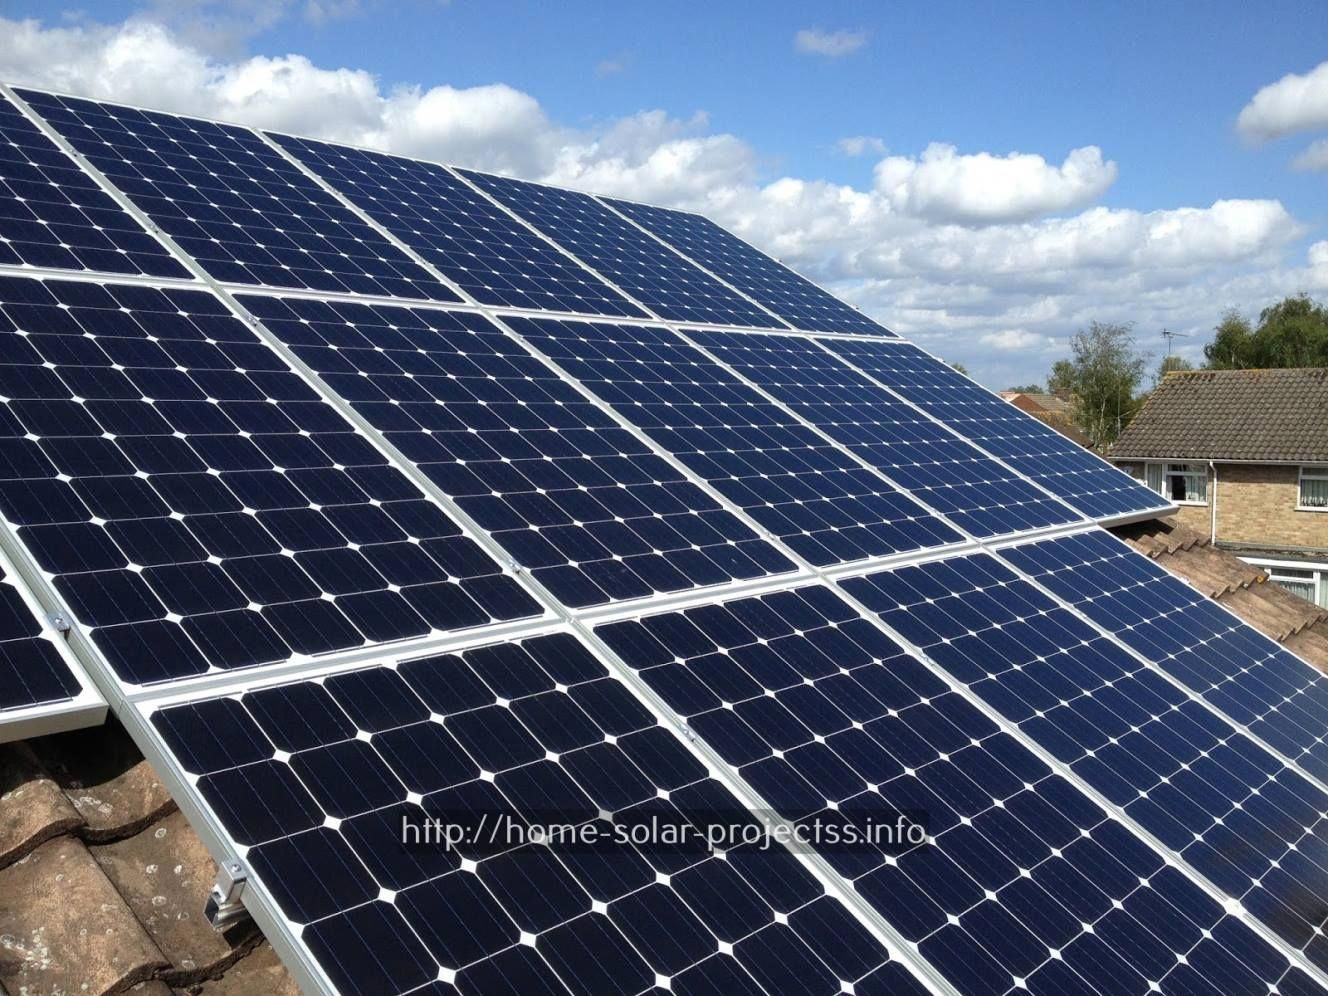 How To Make My Home Solar Powered Solar Panels Drawing How To Set Up A Solar Panel System At Home 1651278184 In 2020 Solar Panels Best Solar Panels Used Solar Panels